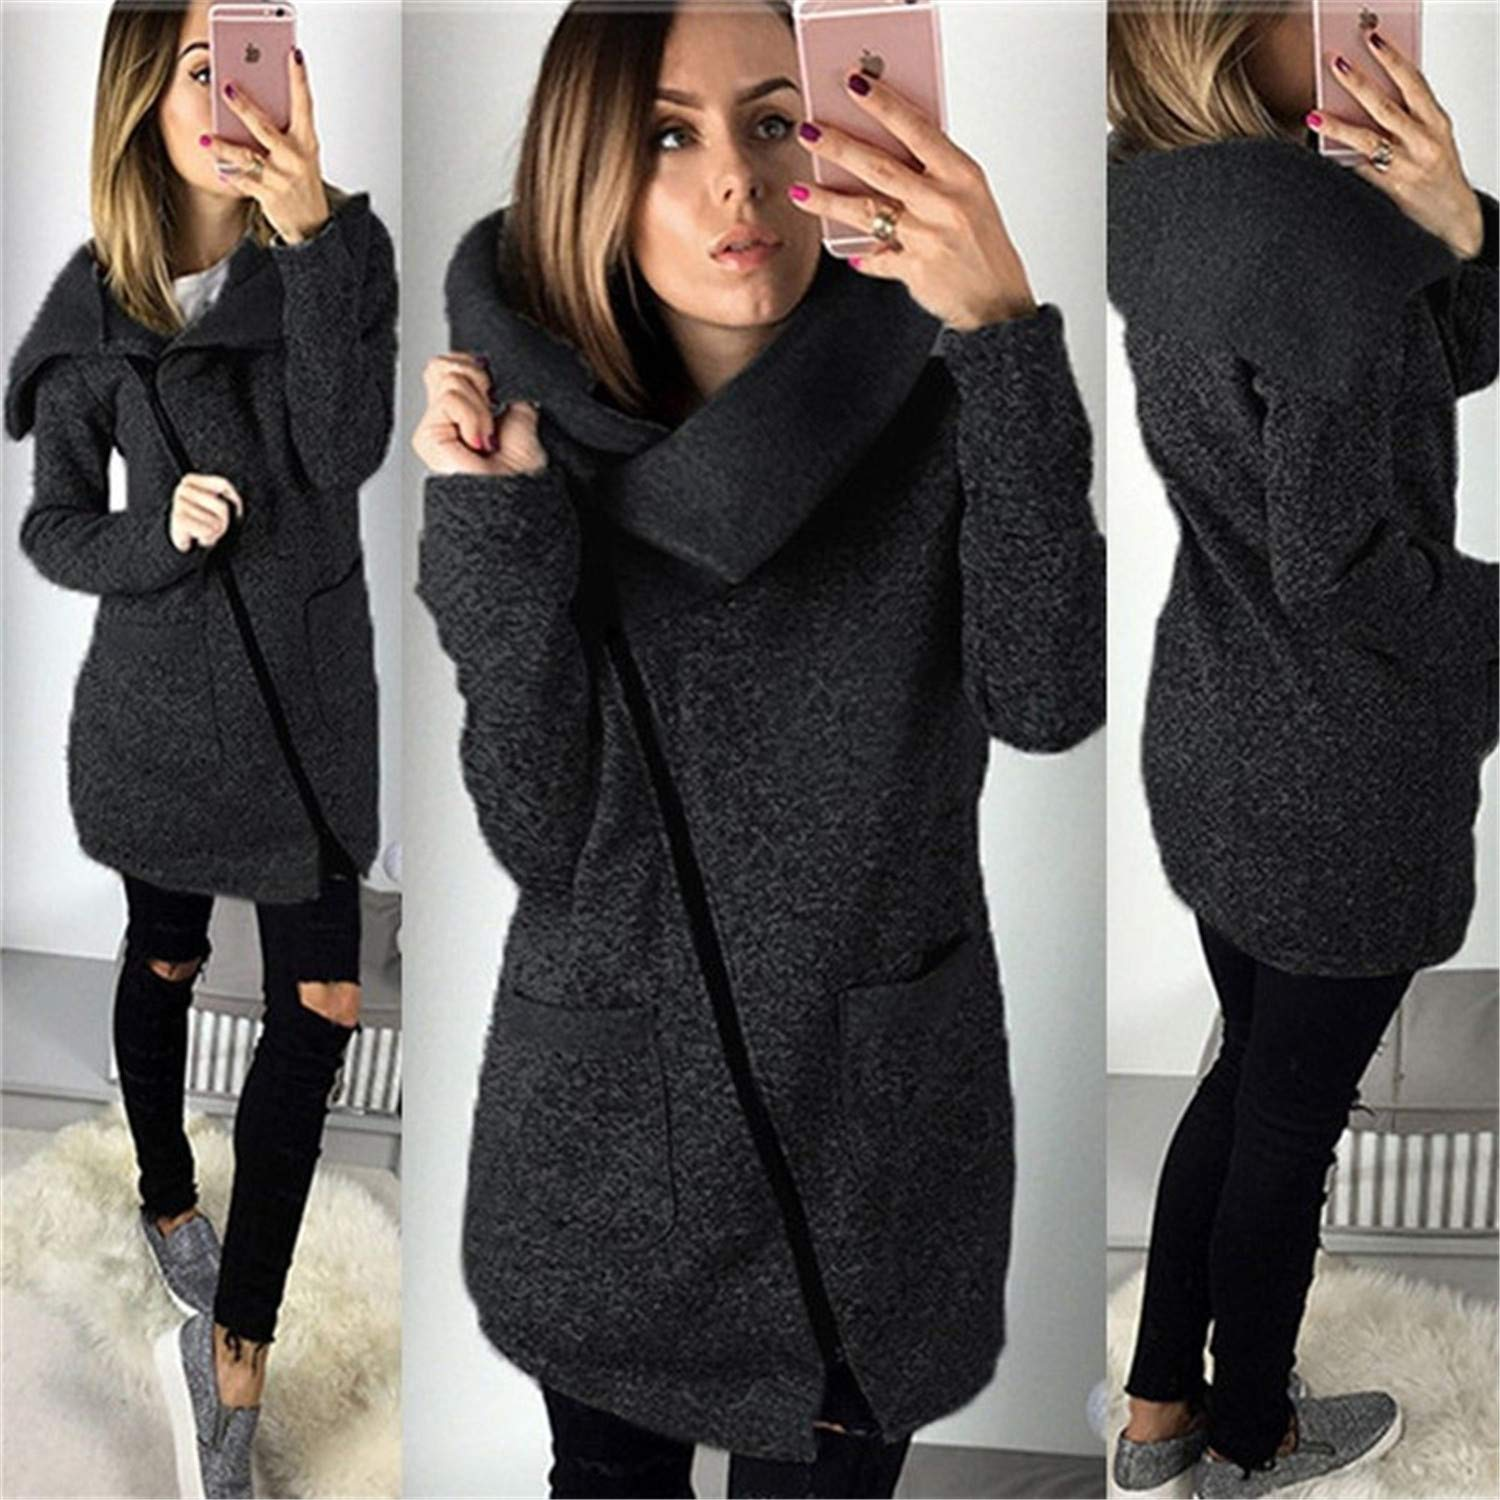 Amazon.com: Hangwucha Women Spring Winter Fleece Sweatshirt Hoodie Long Zipper Hoodies Jacket Coat Outwear Plus Size 5XL Sudaderas para Mujer Black XXL: ...